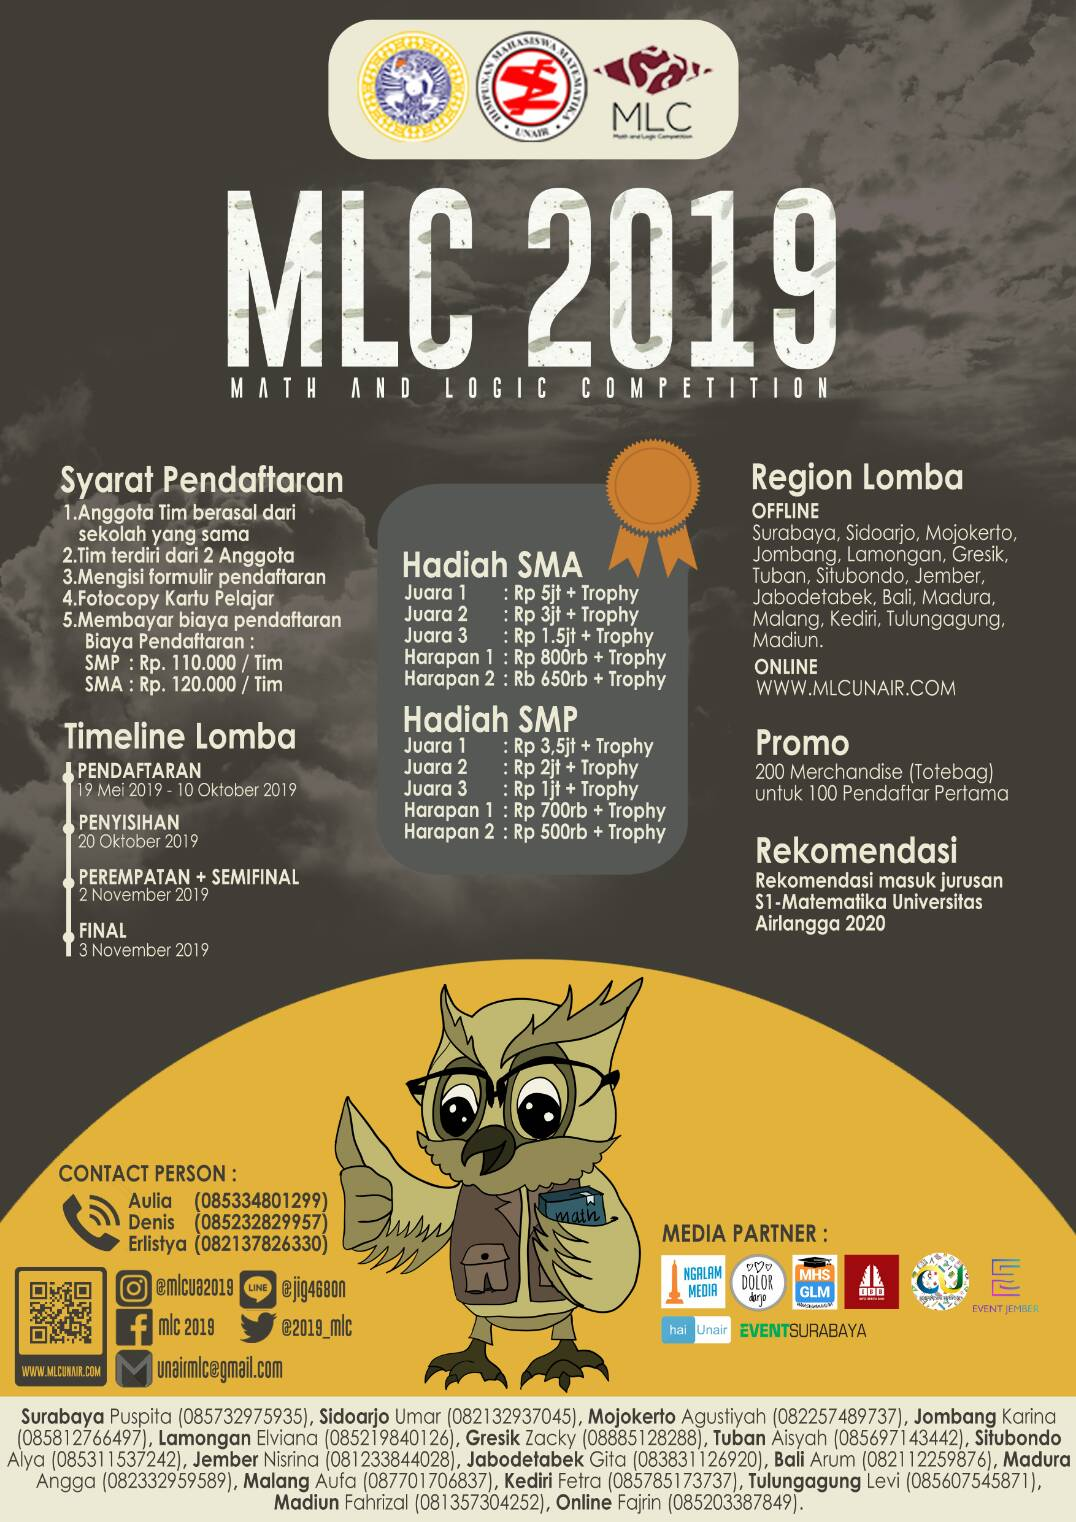 Math and Logic Competition 2019